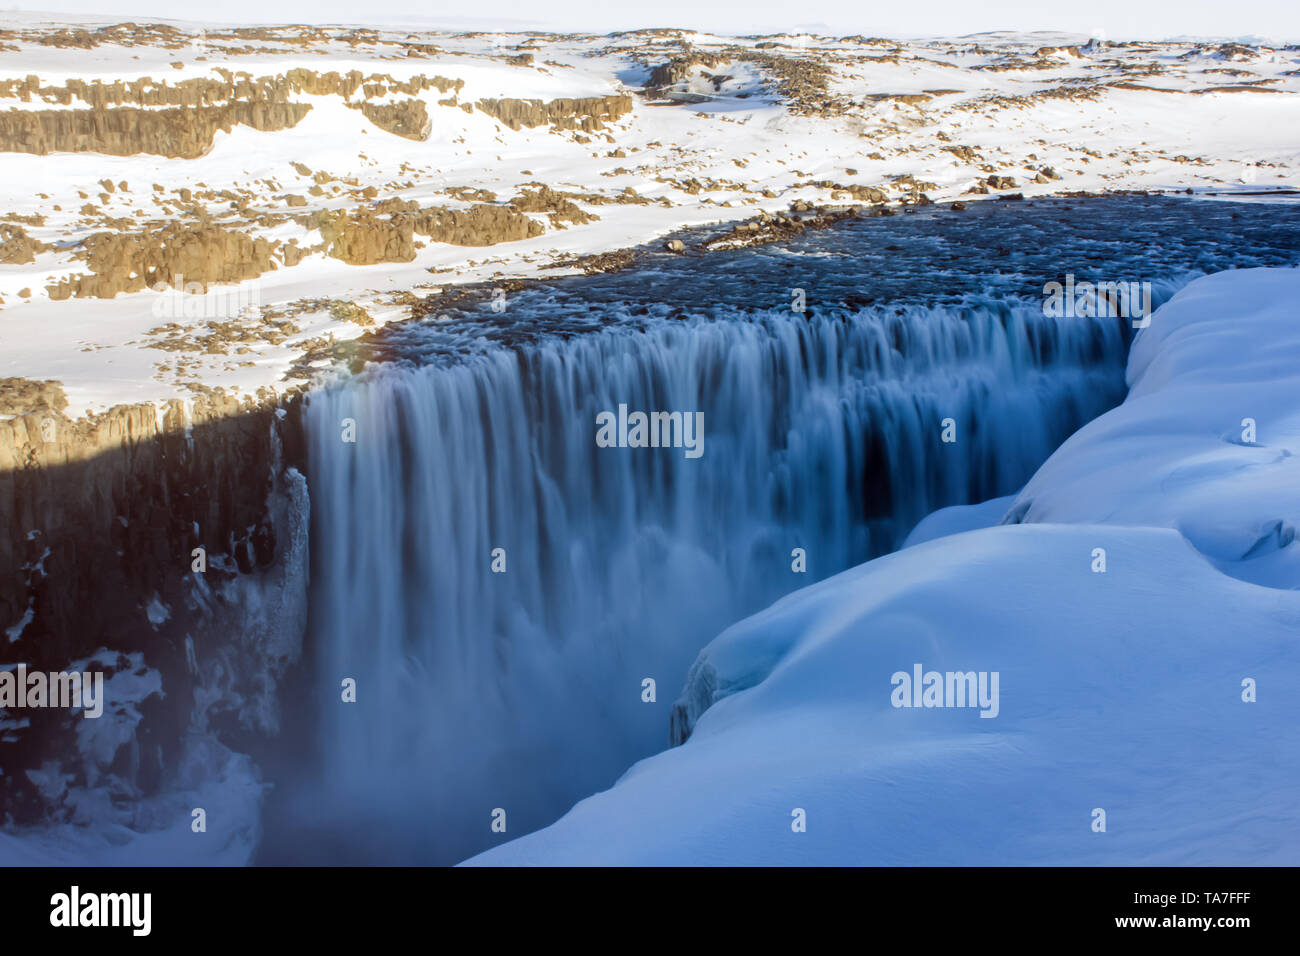 Detifoss waterfall at twilight with veil effect in Iceland - Stock Image